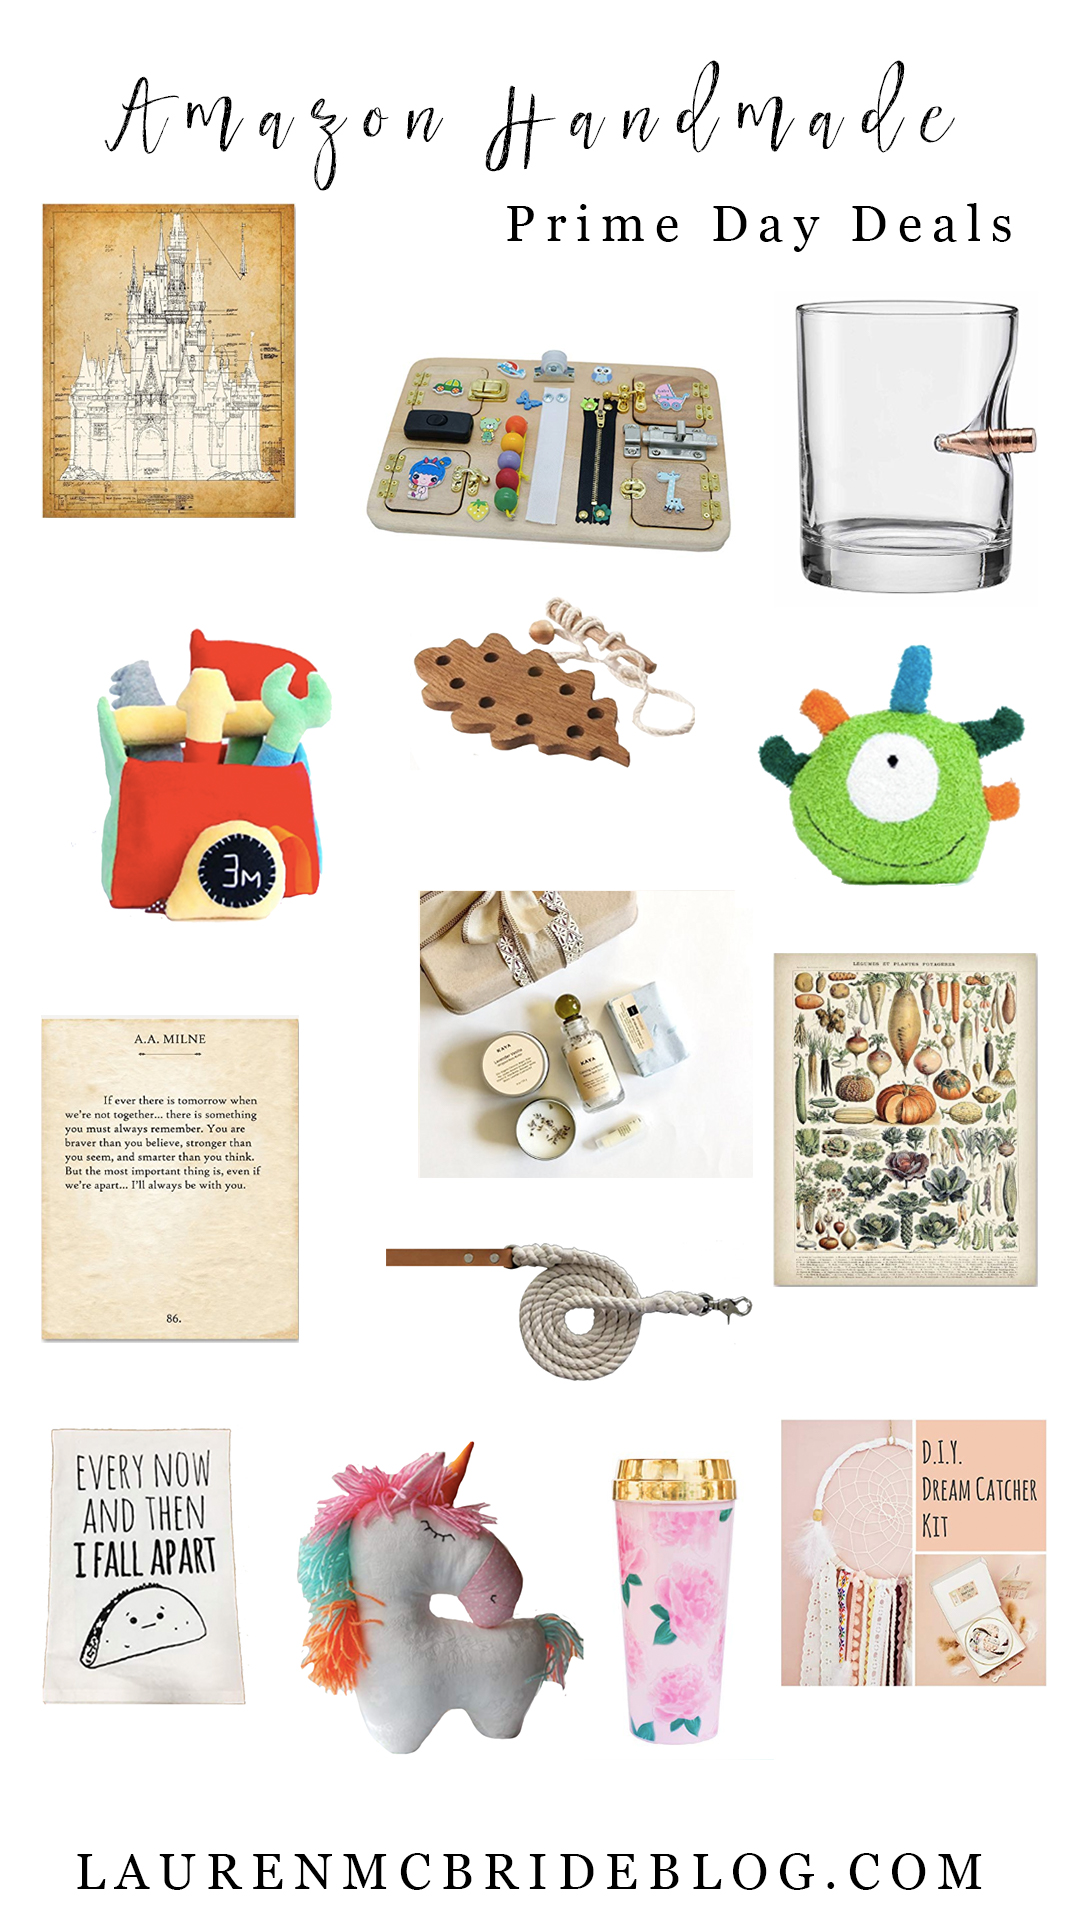 Life and style blogger Lauren McBride shares Amazon Handmade Prime Day Deals for Amazon's 2018 Prime Day!